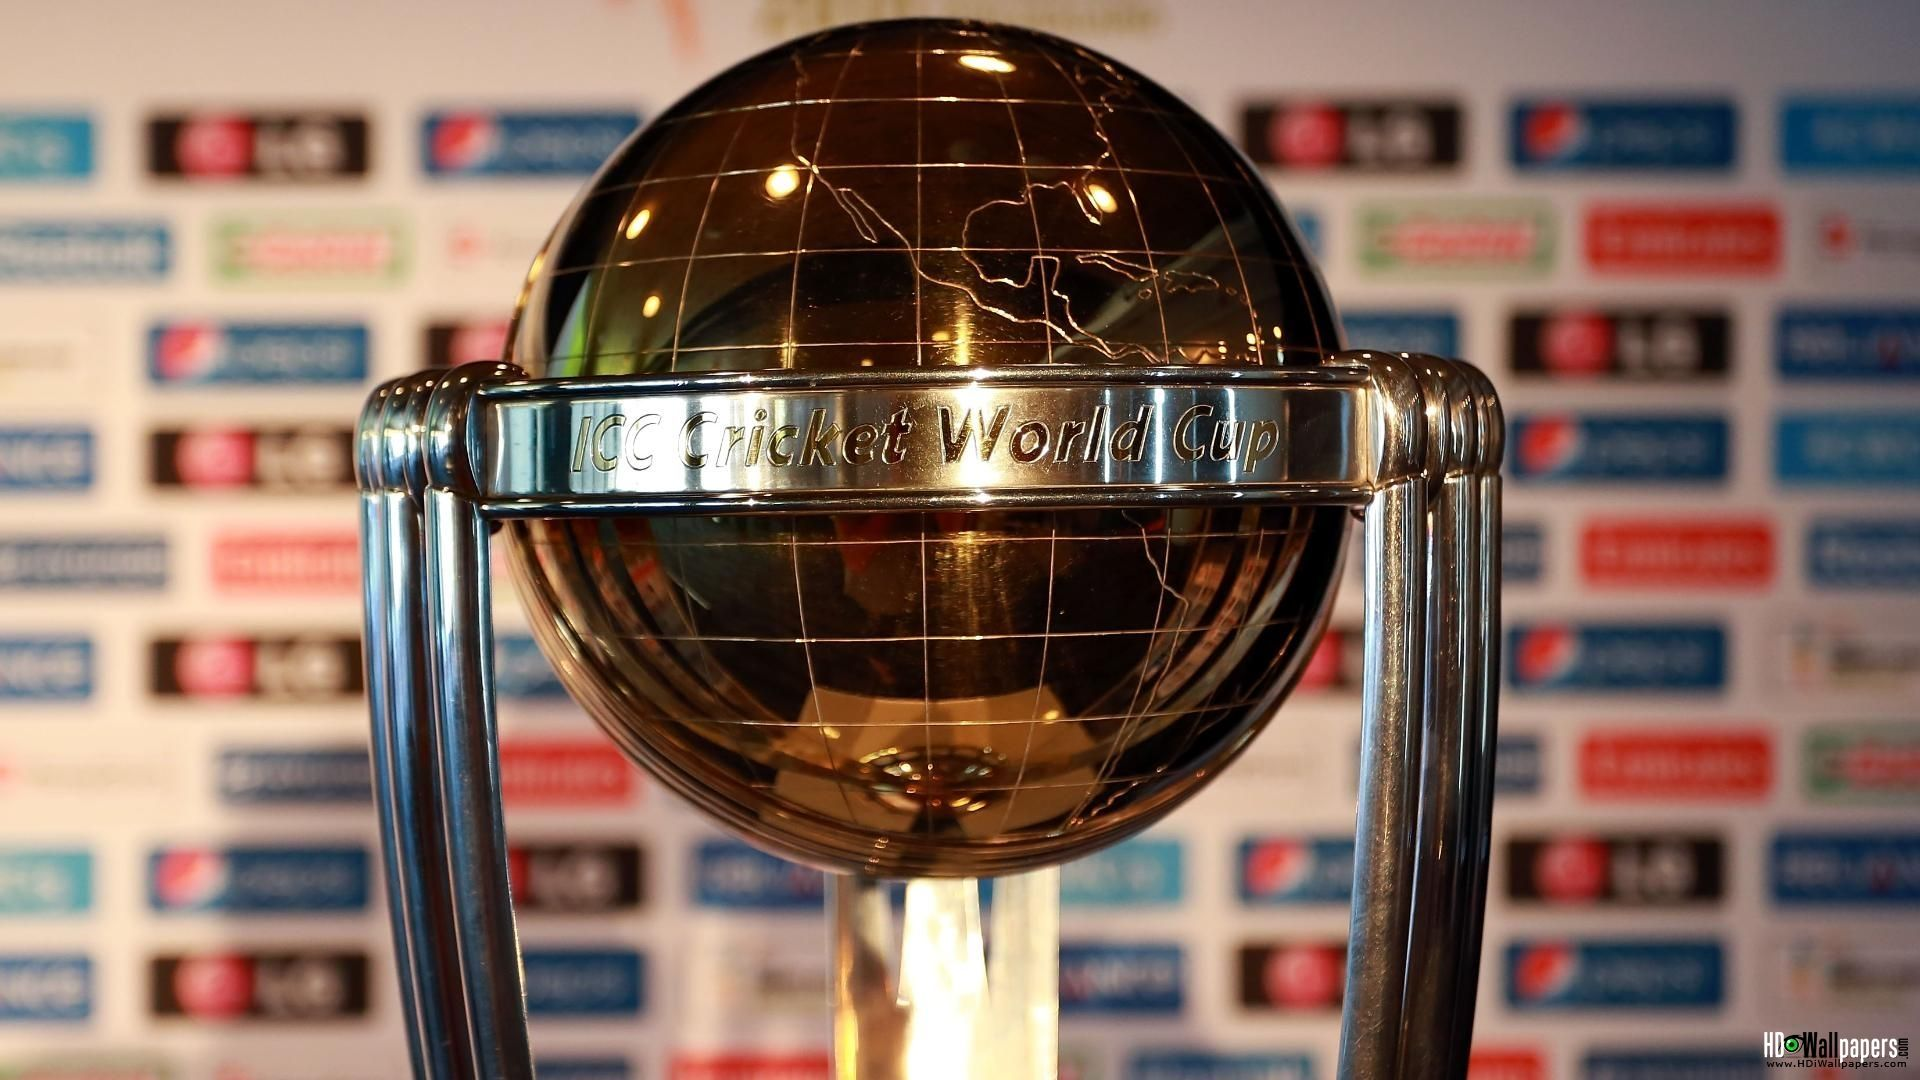 Cricket World Cup 2015 Wallpaper Hd Cricket World Cup 2015